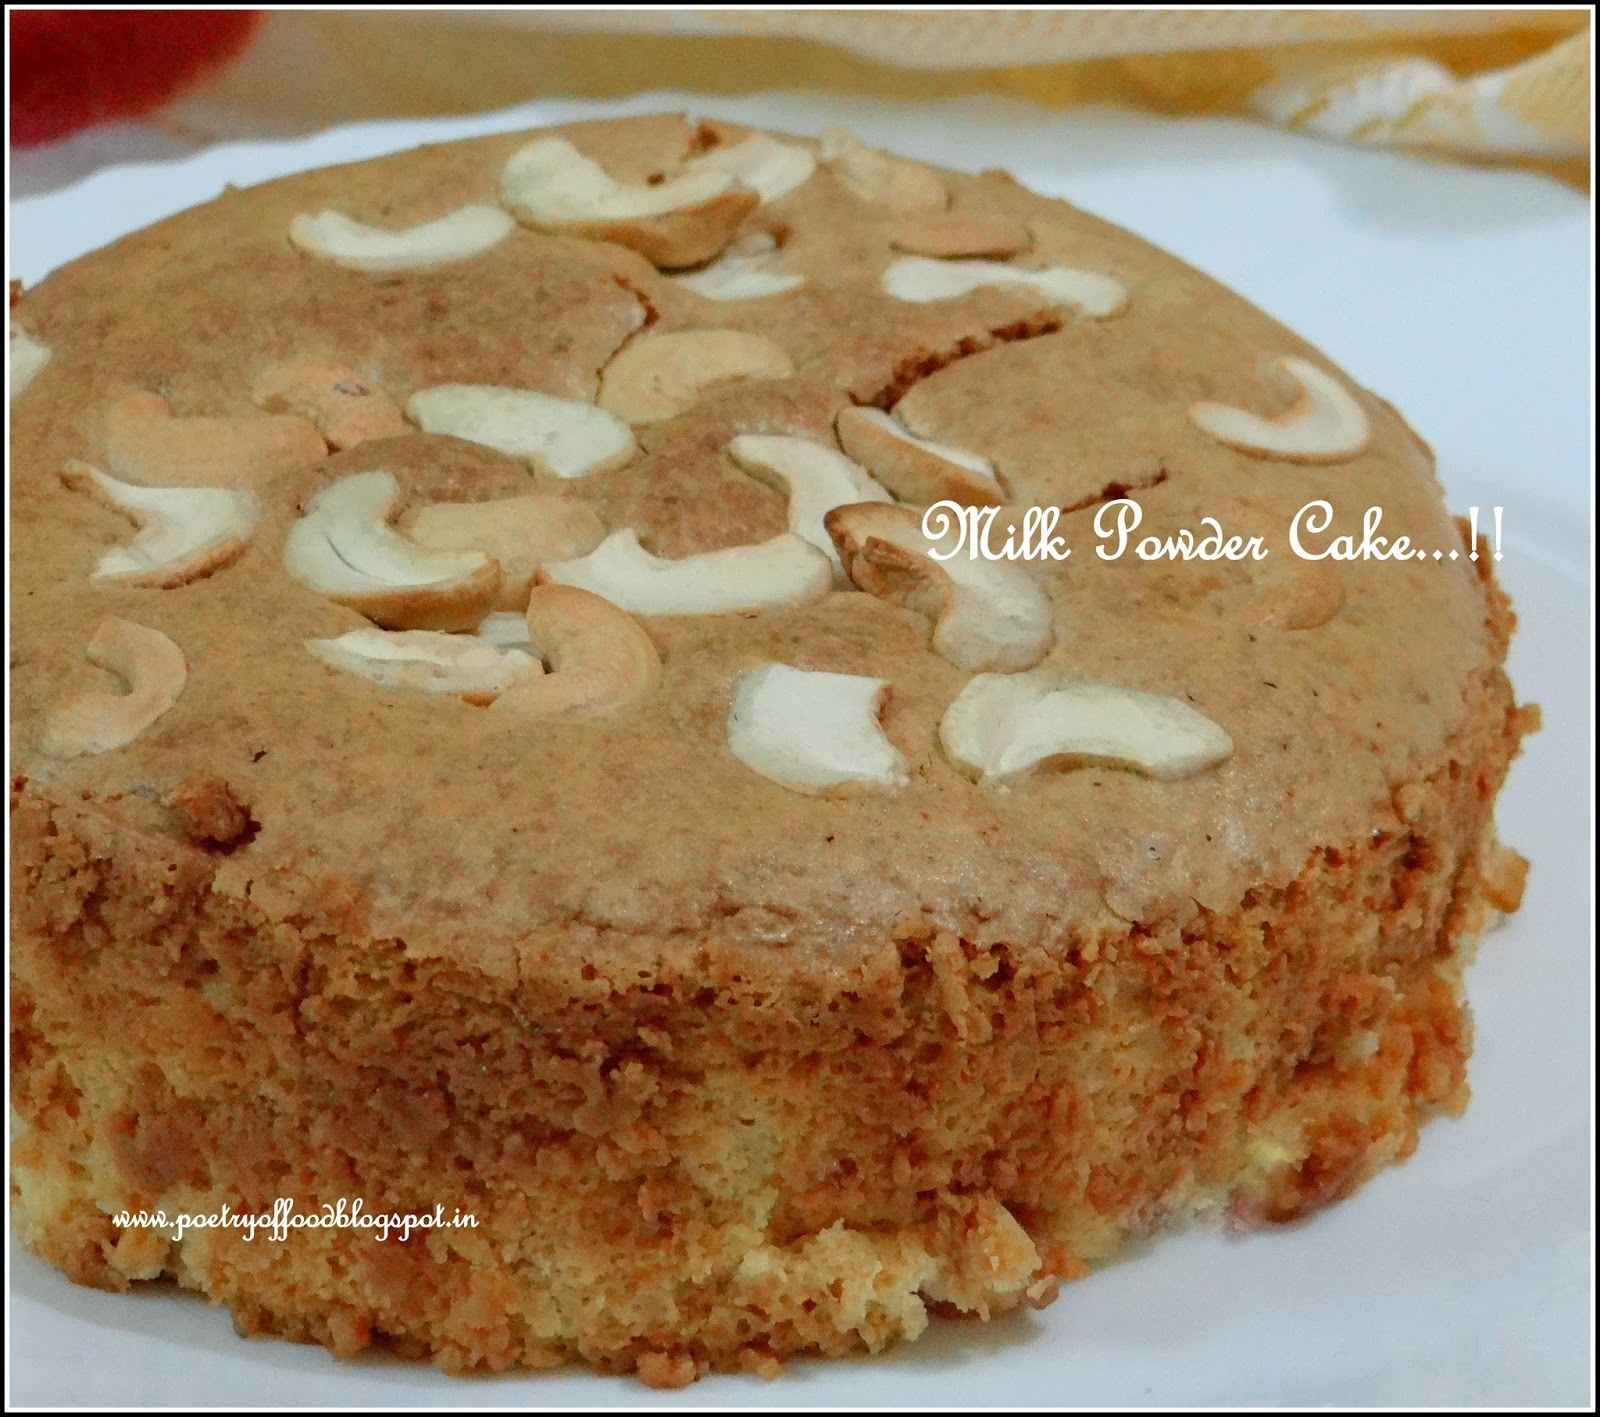 Milk Powder Cake...!!!